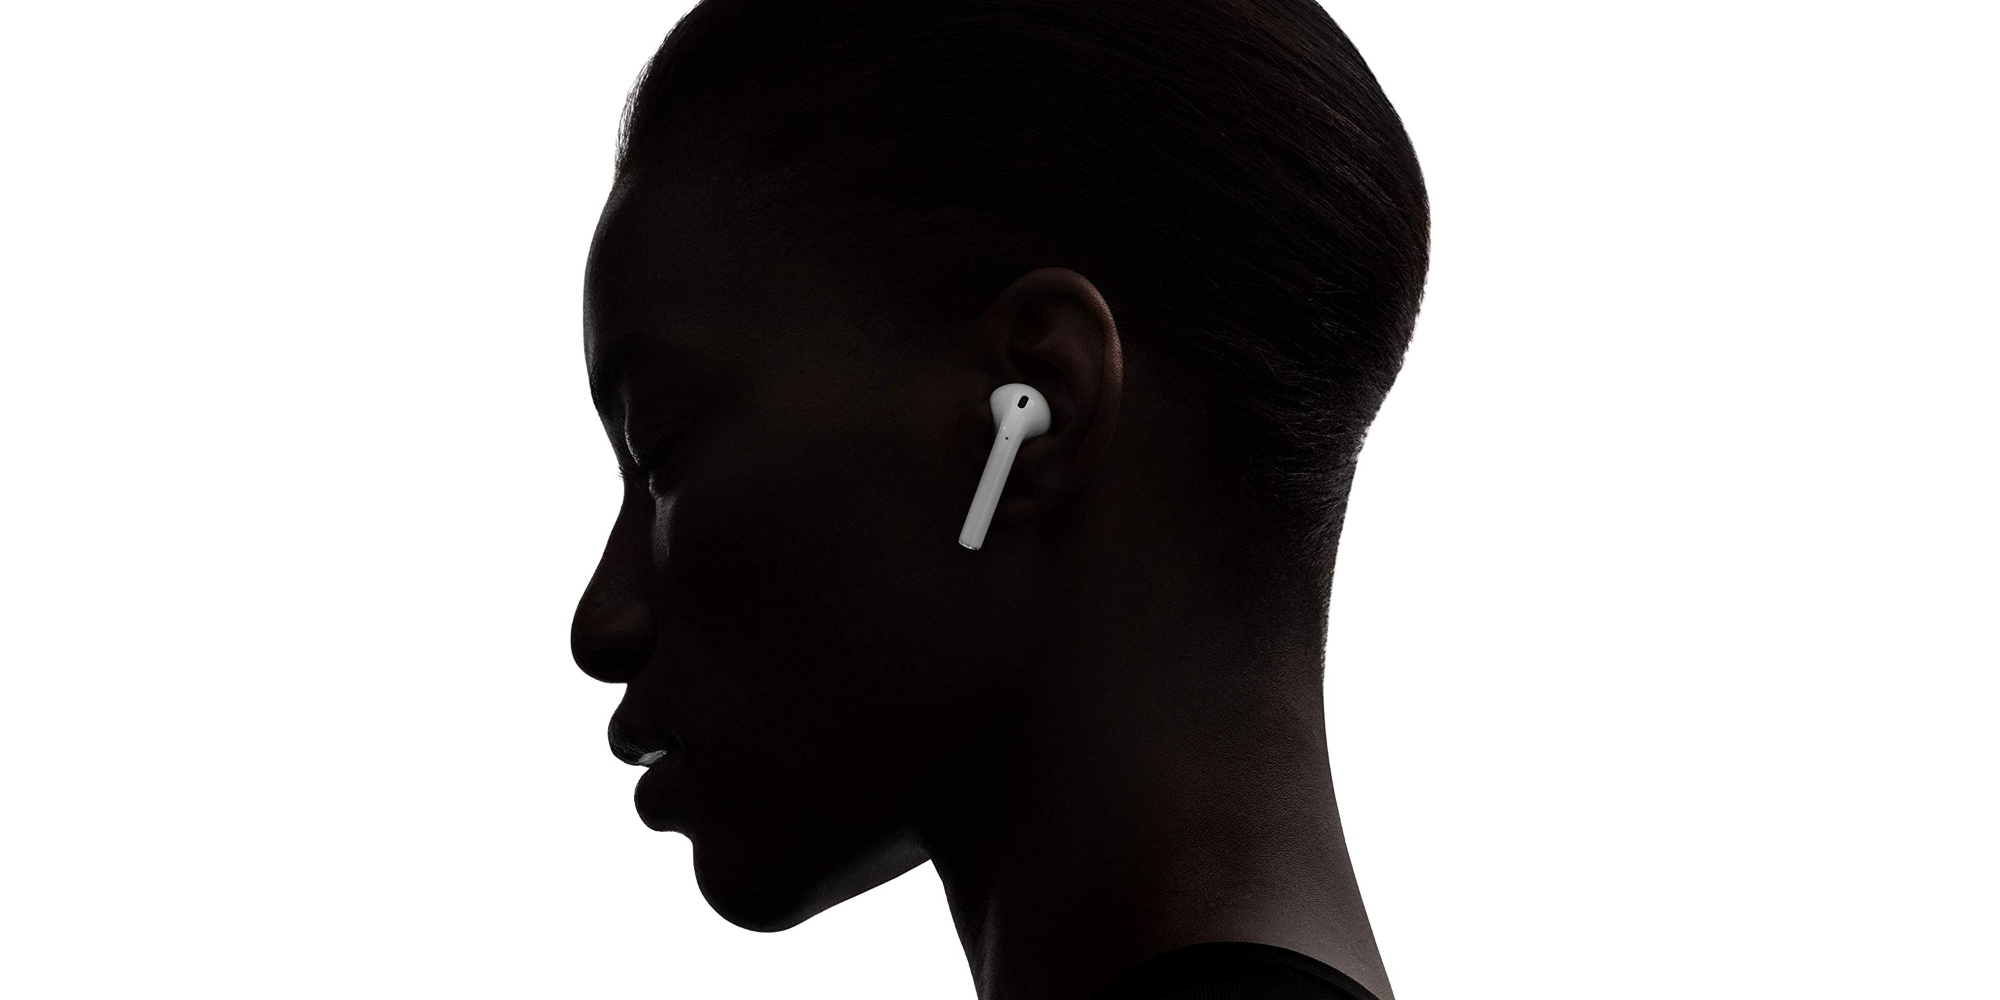 Apple's second-gen. AirPods are within a penny of the Amazon low, now $129 - 9to5Toys